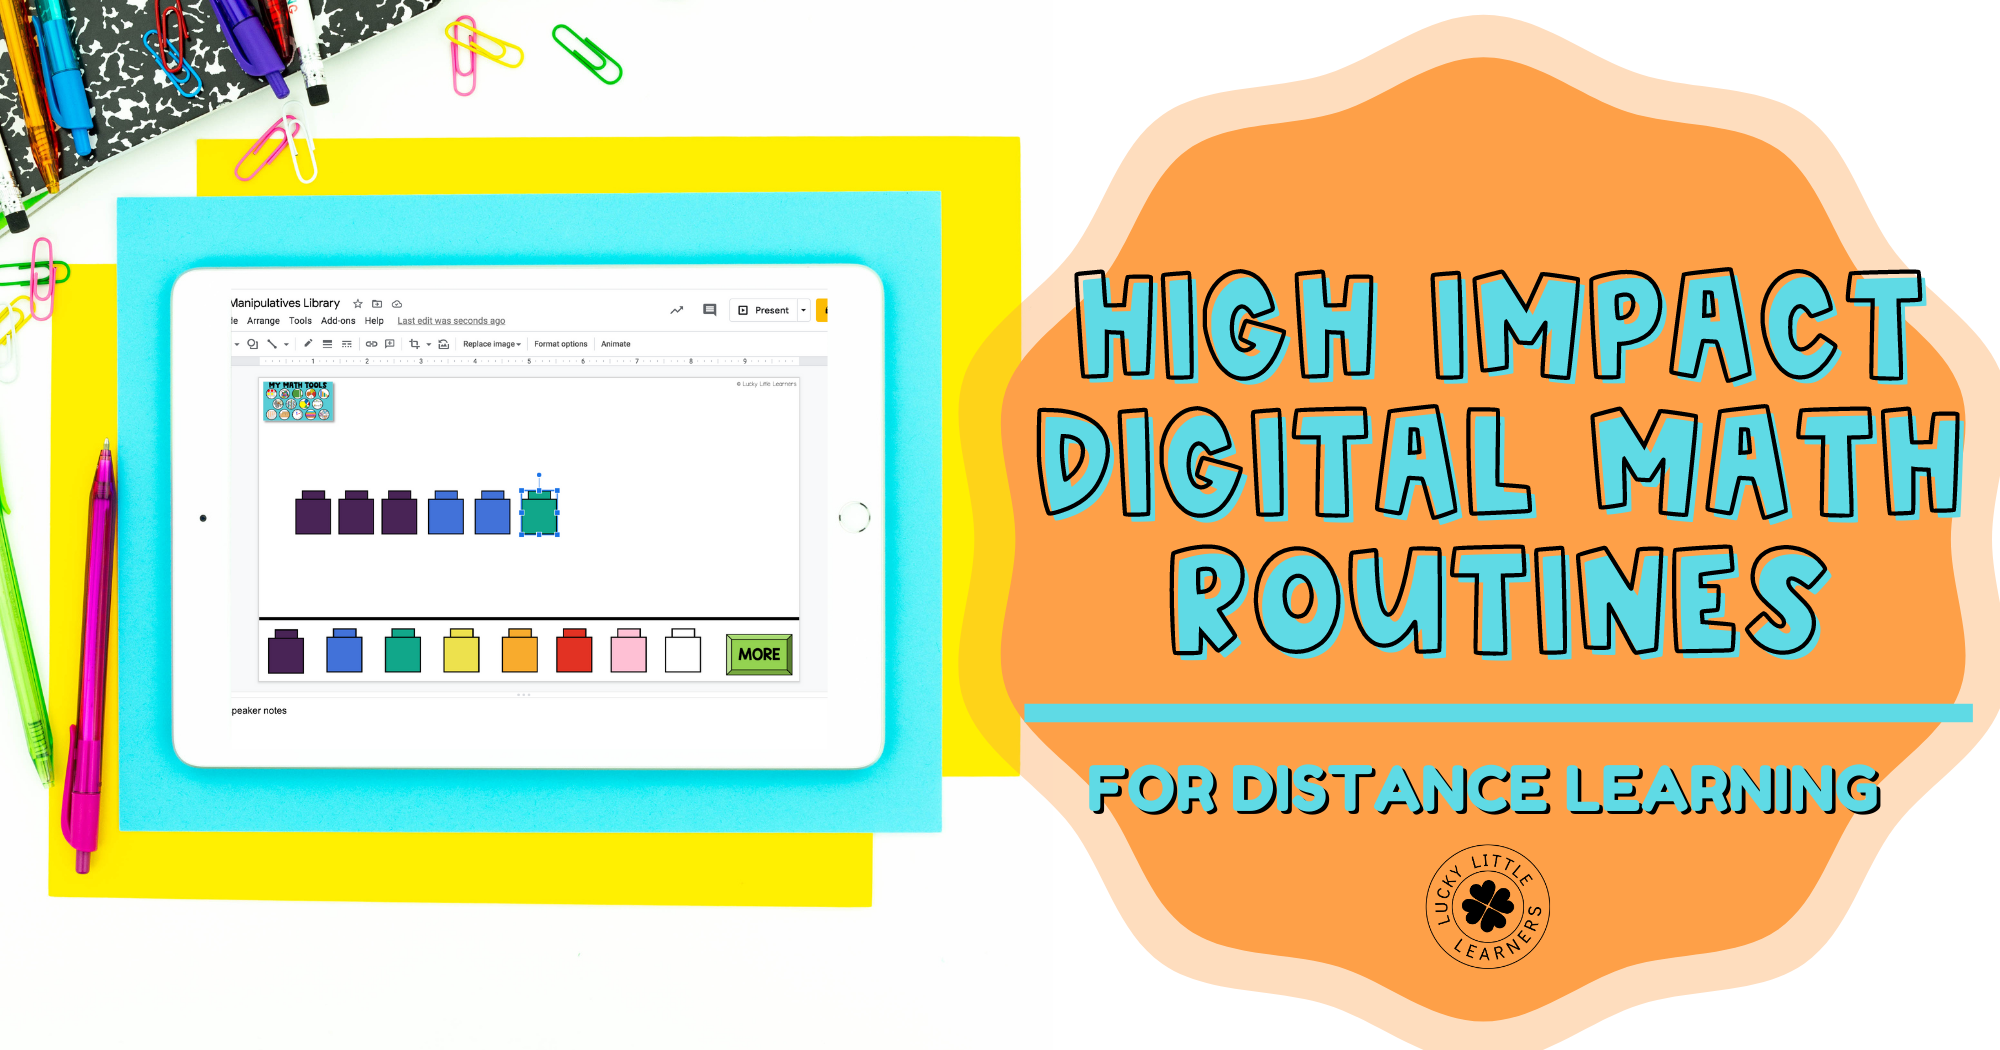 High Impact Digital Math Routines for Distance Learning